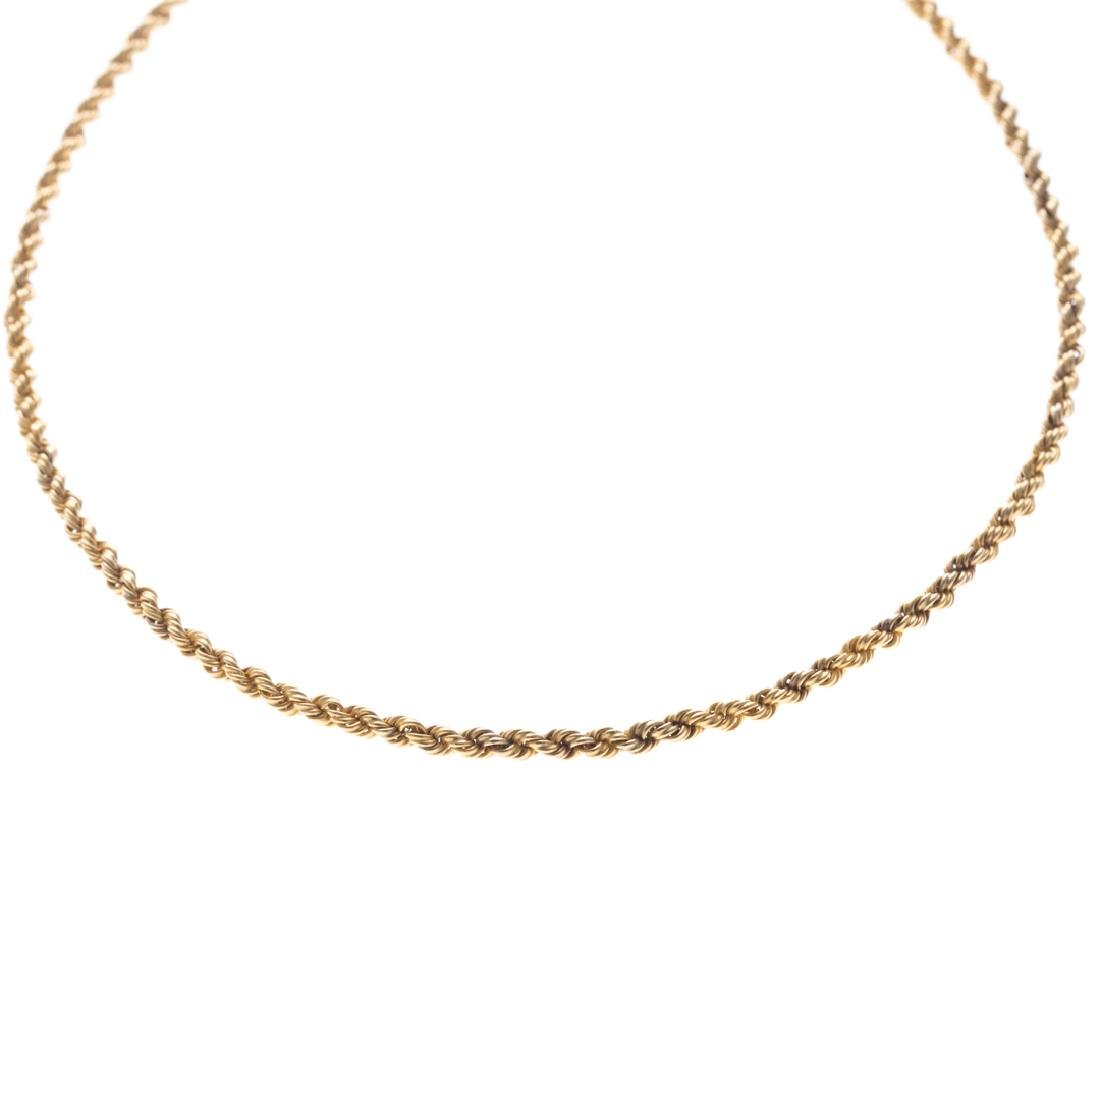 A Hefty Rope Chain in 18K Yellow Gold - 2